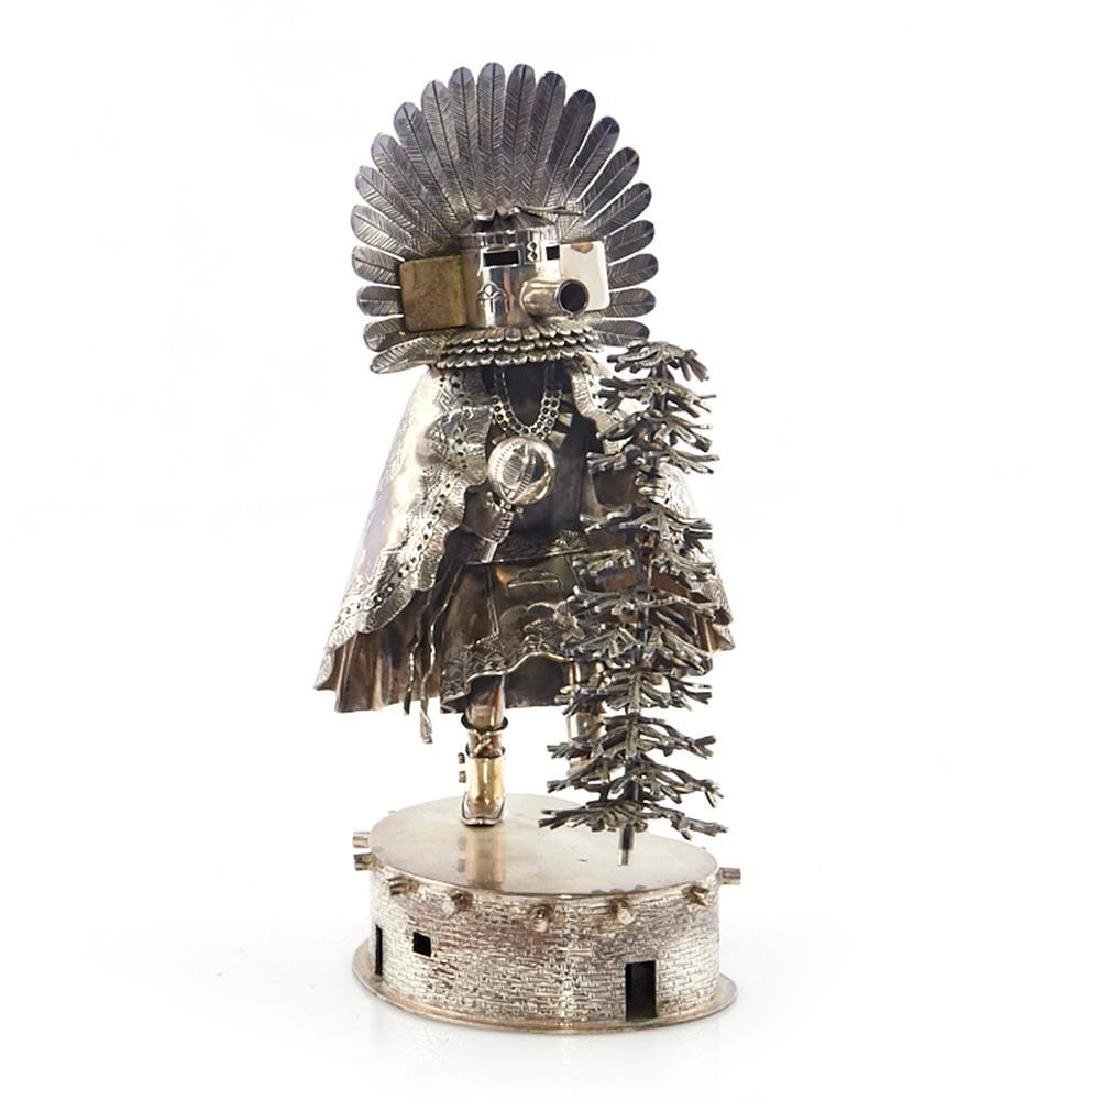 STERLING SILVER KACHINA SCULPTURE